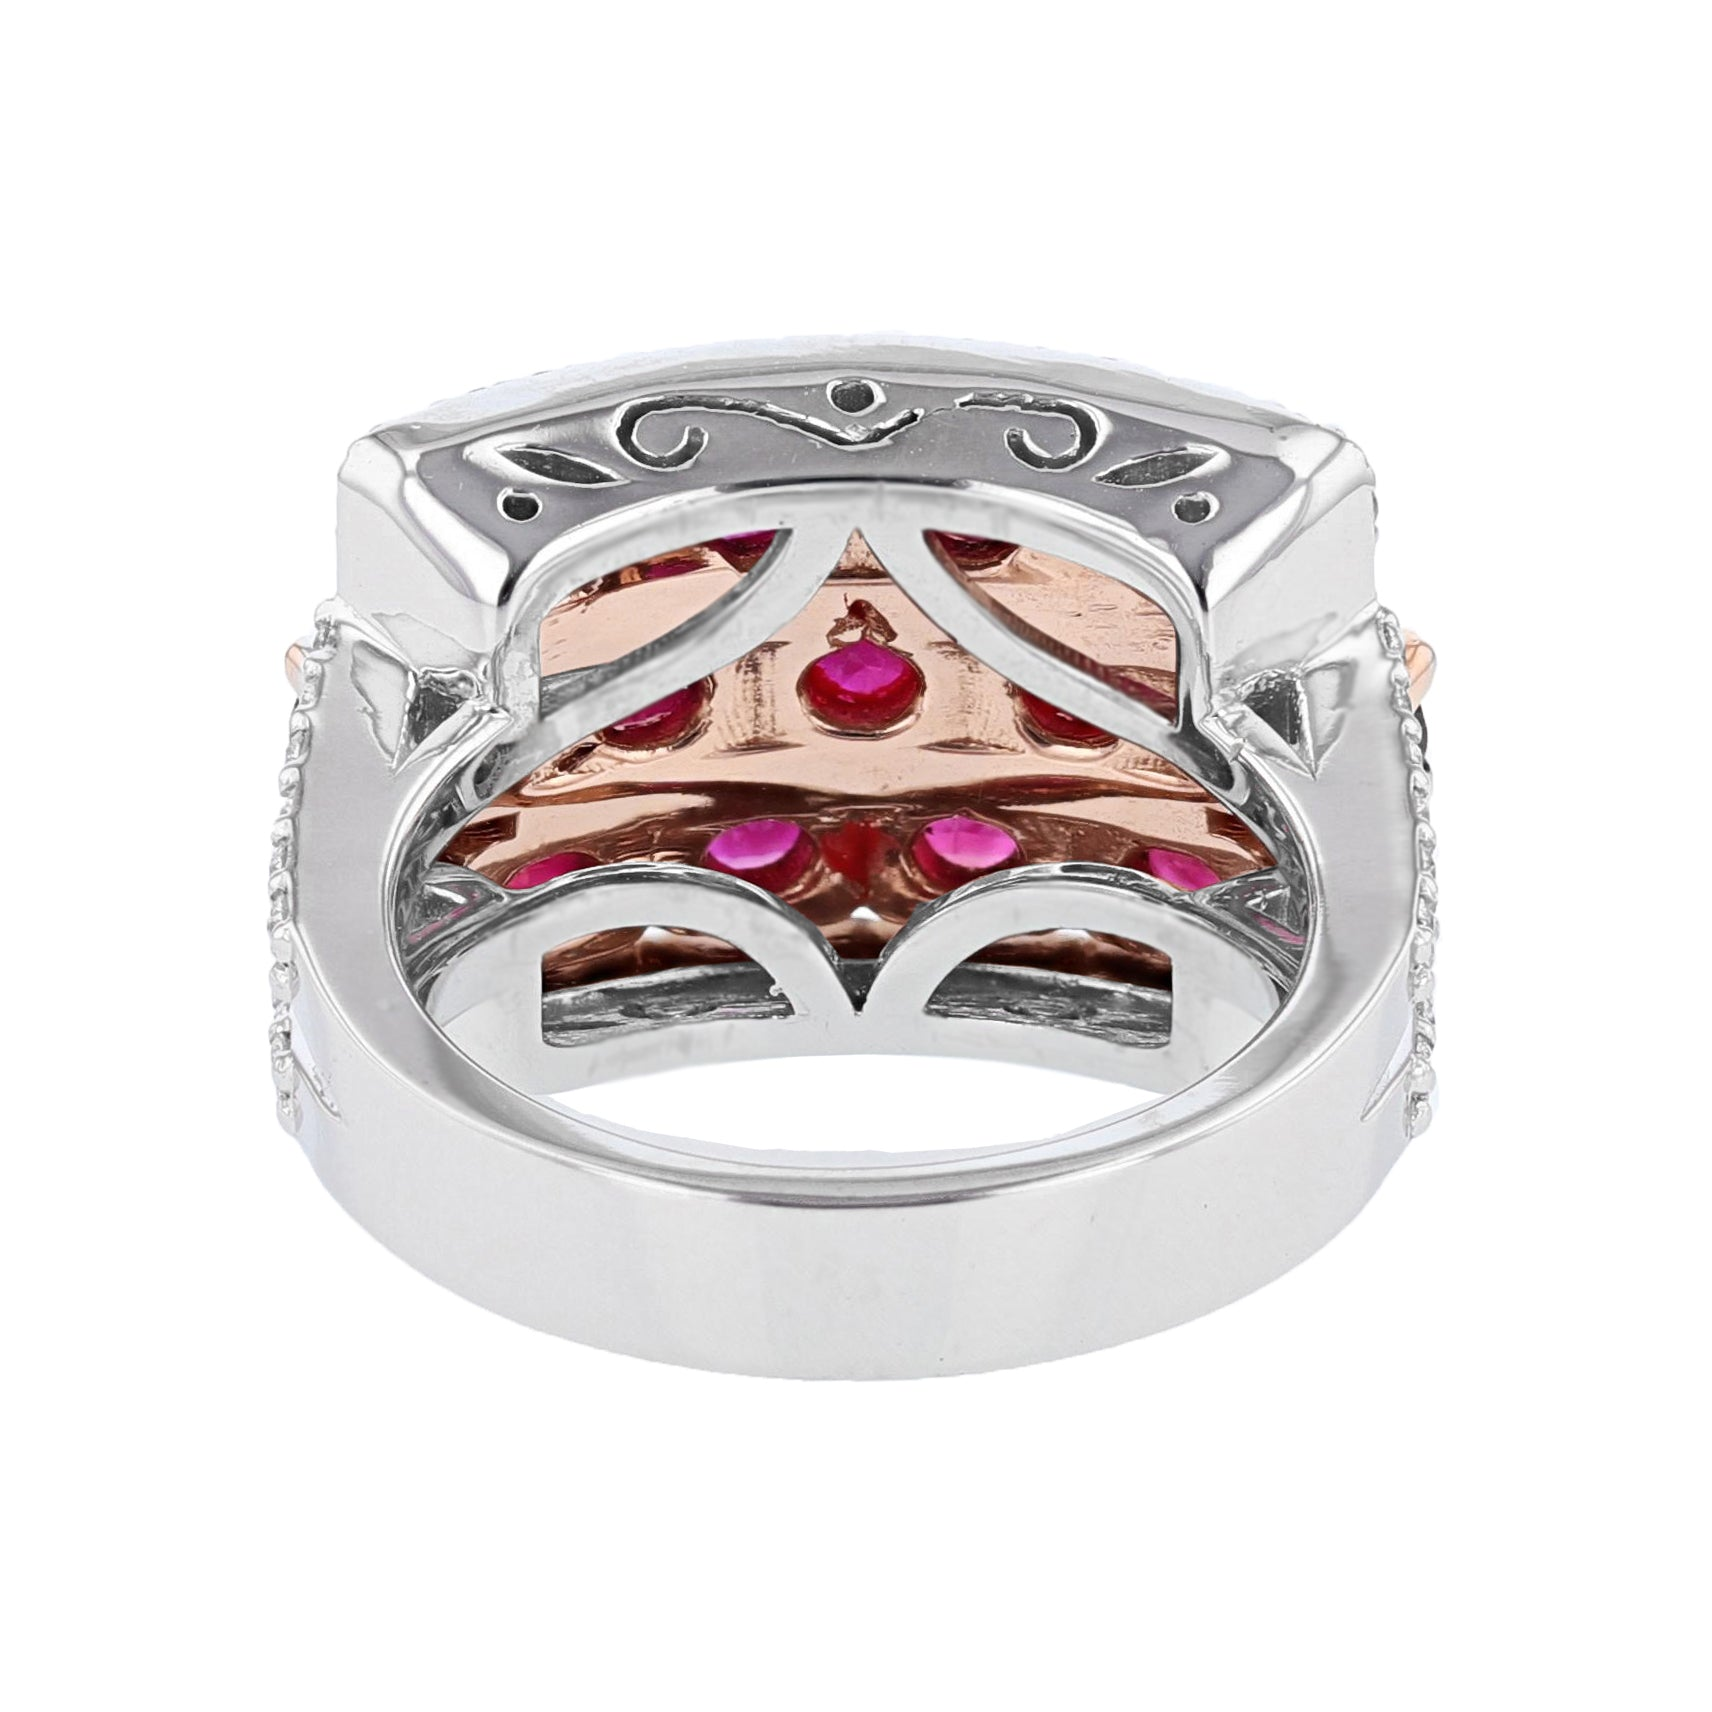 14K White and Rose Gold Ruby and Diamond Ring - Nazarelle